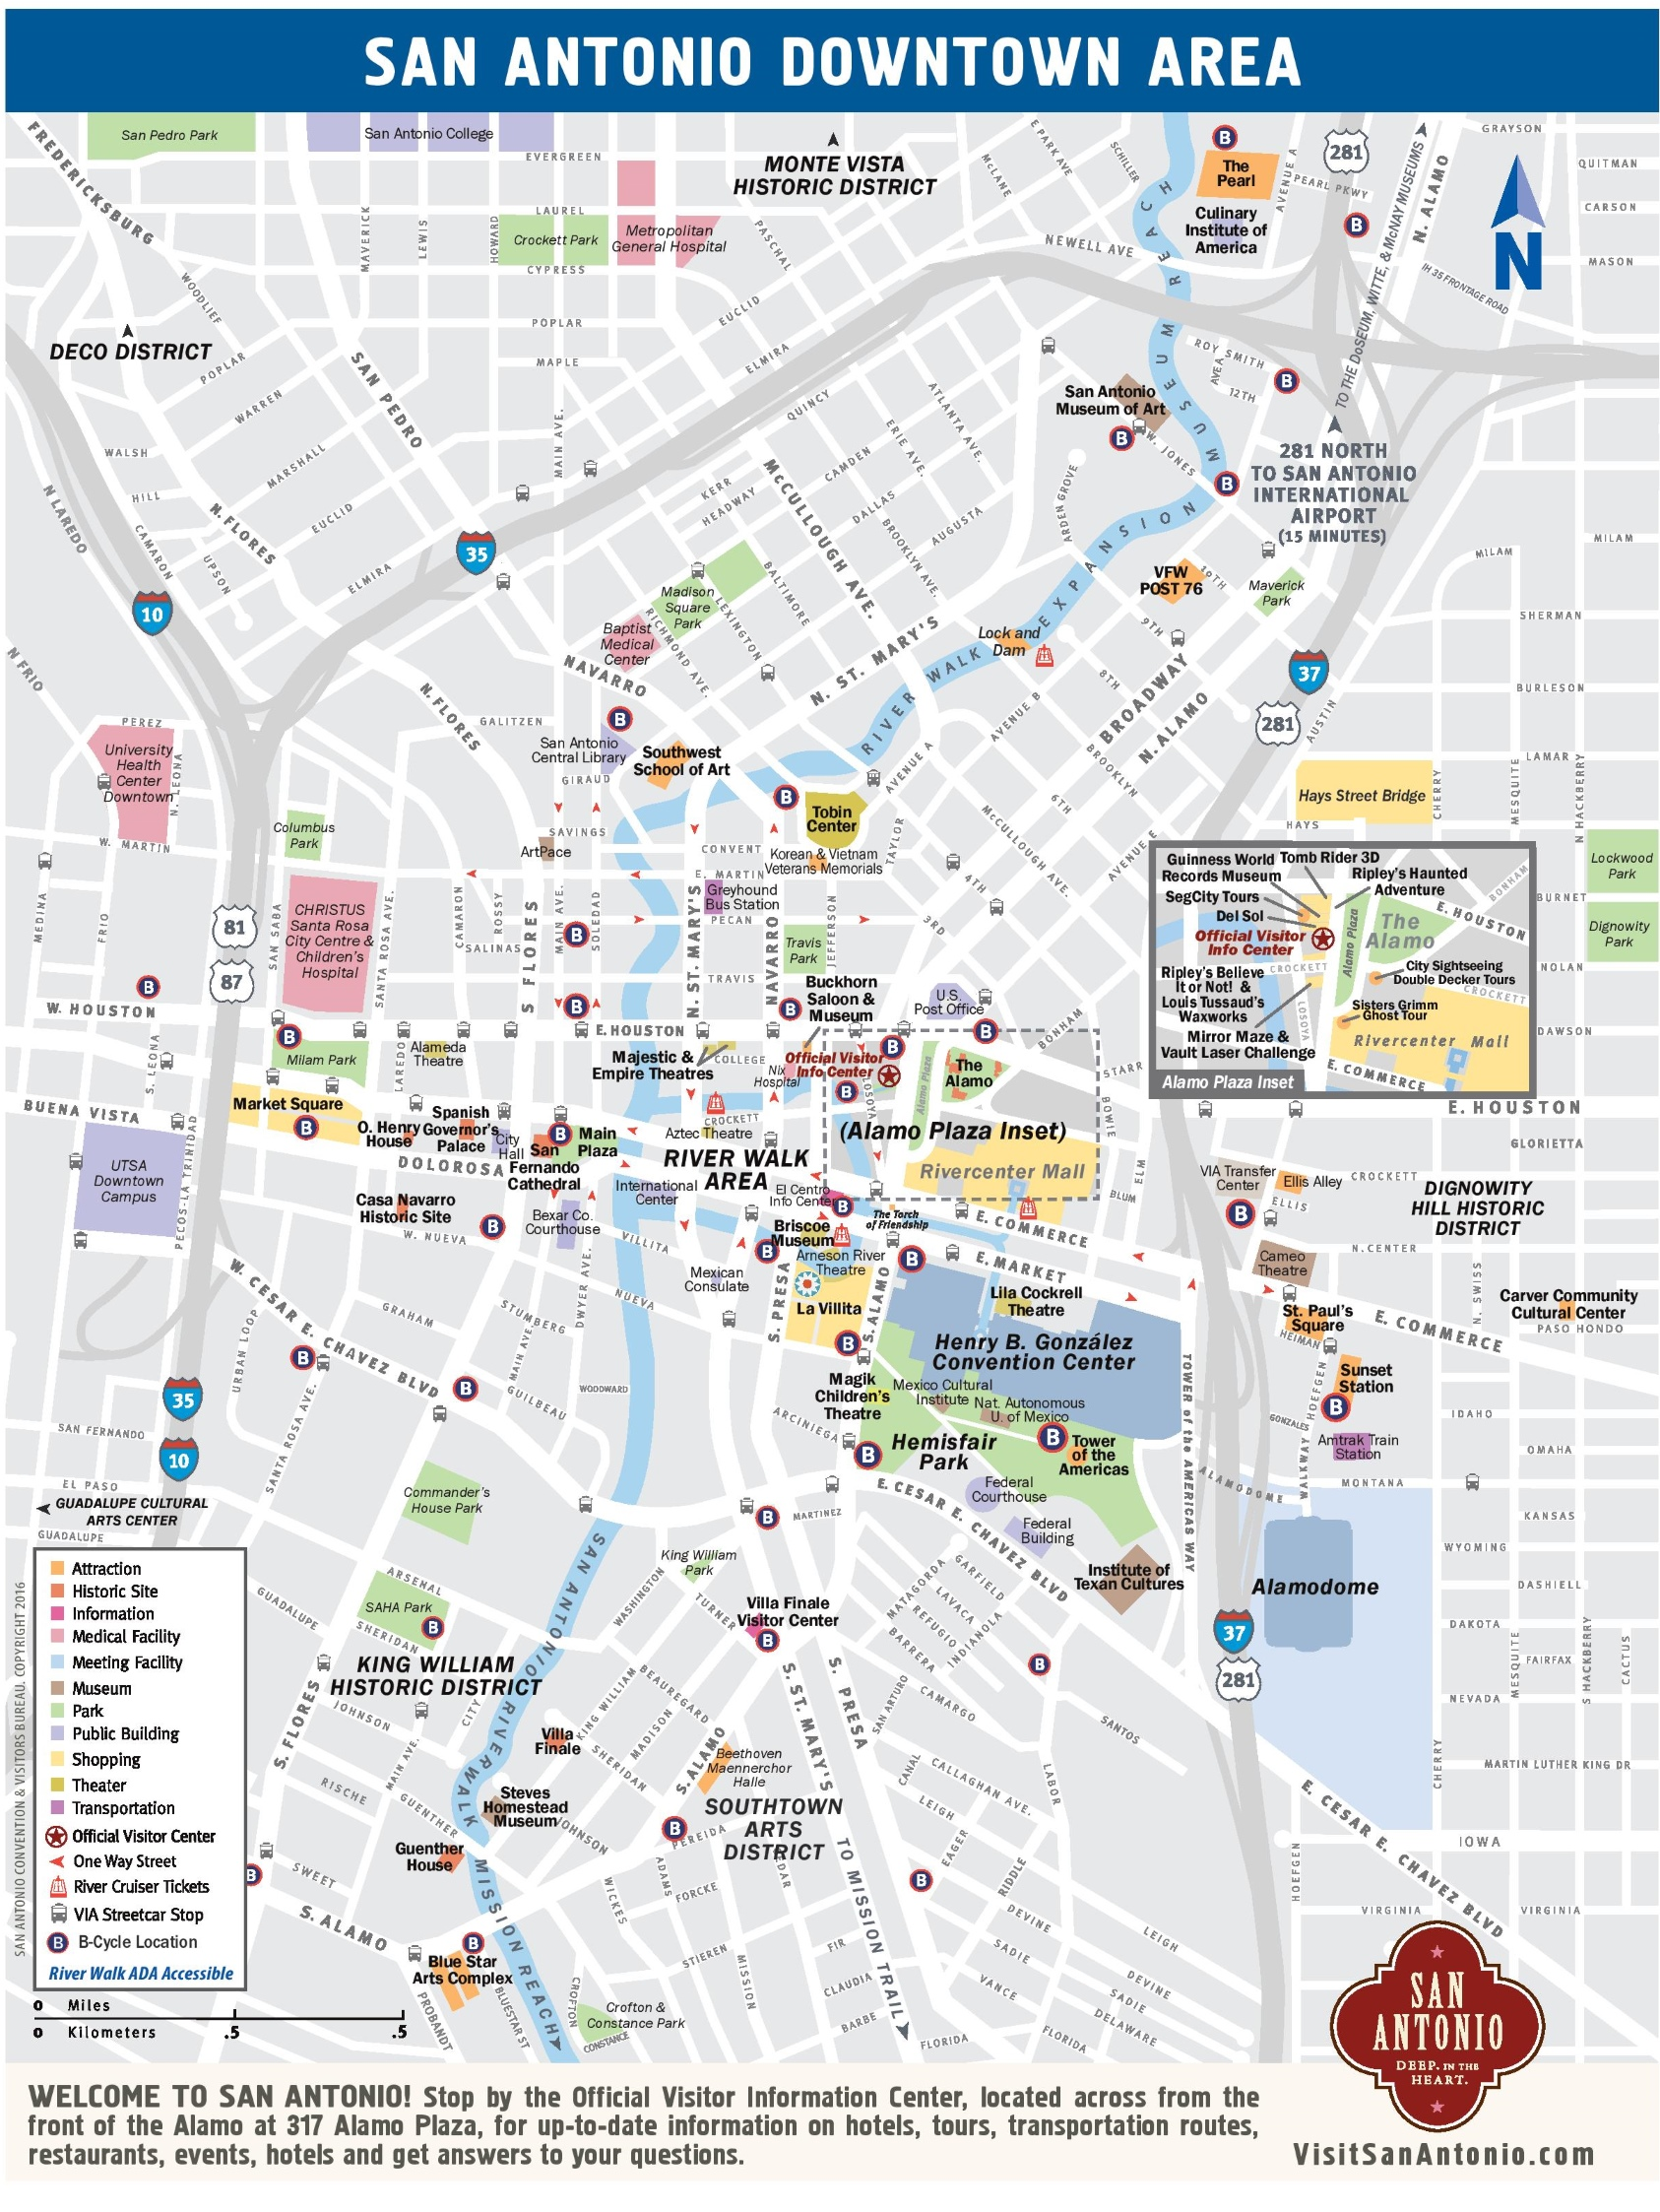 San Antonio downtown map